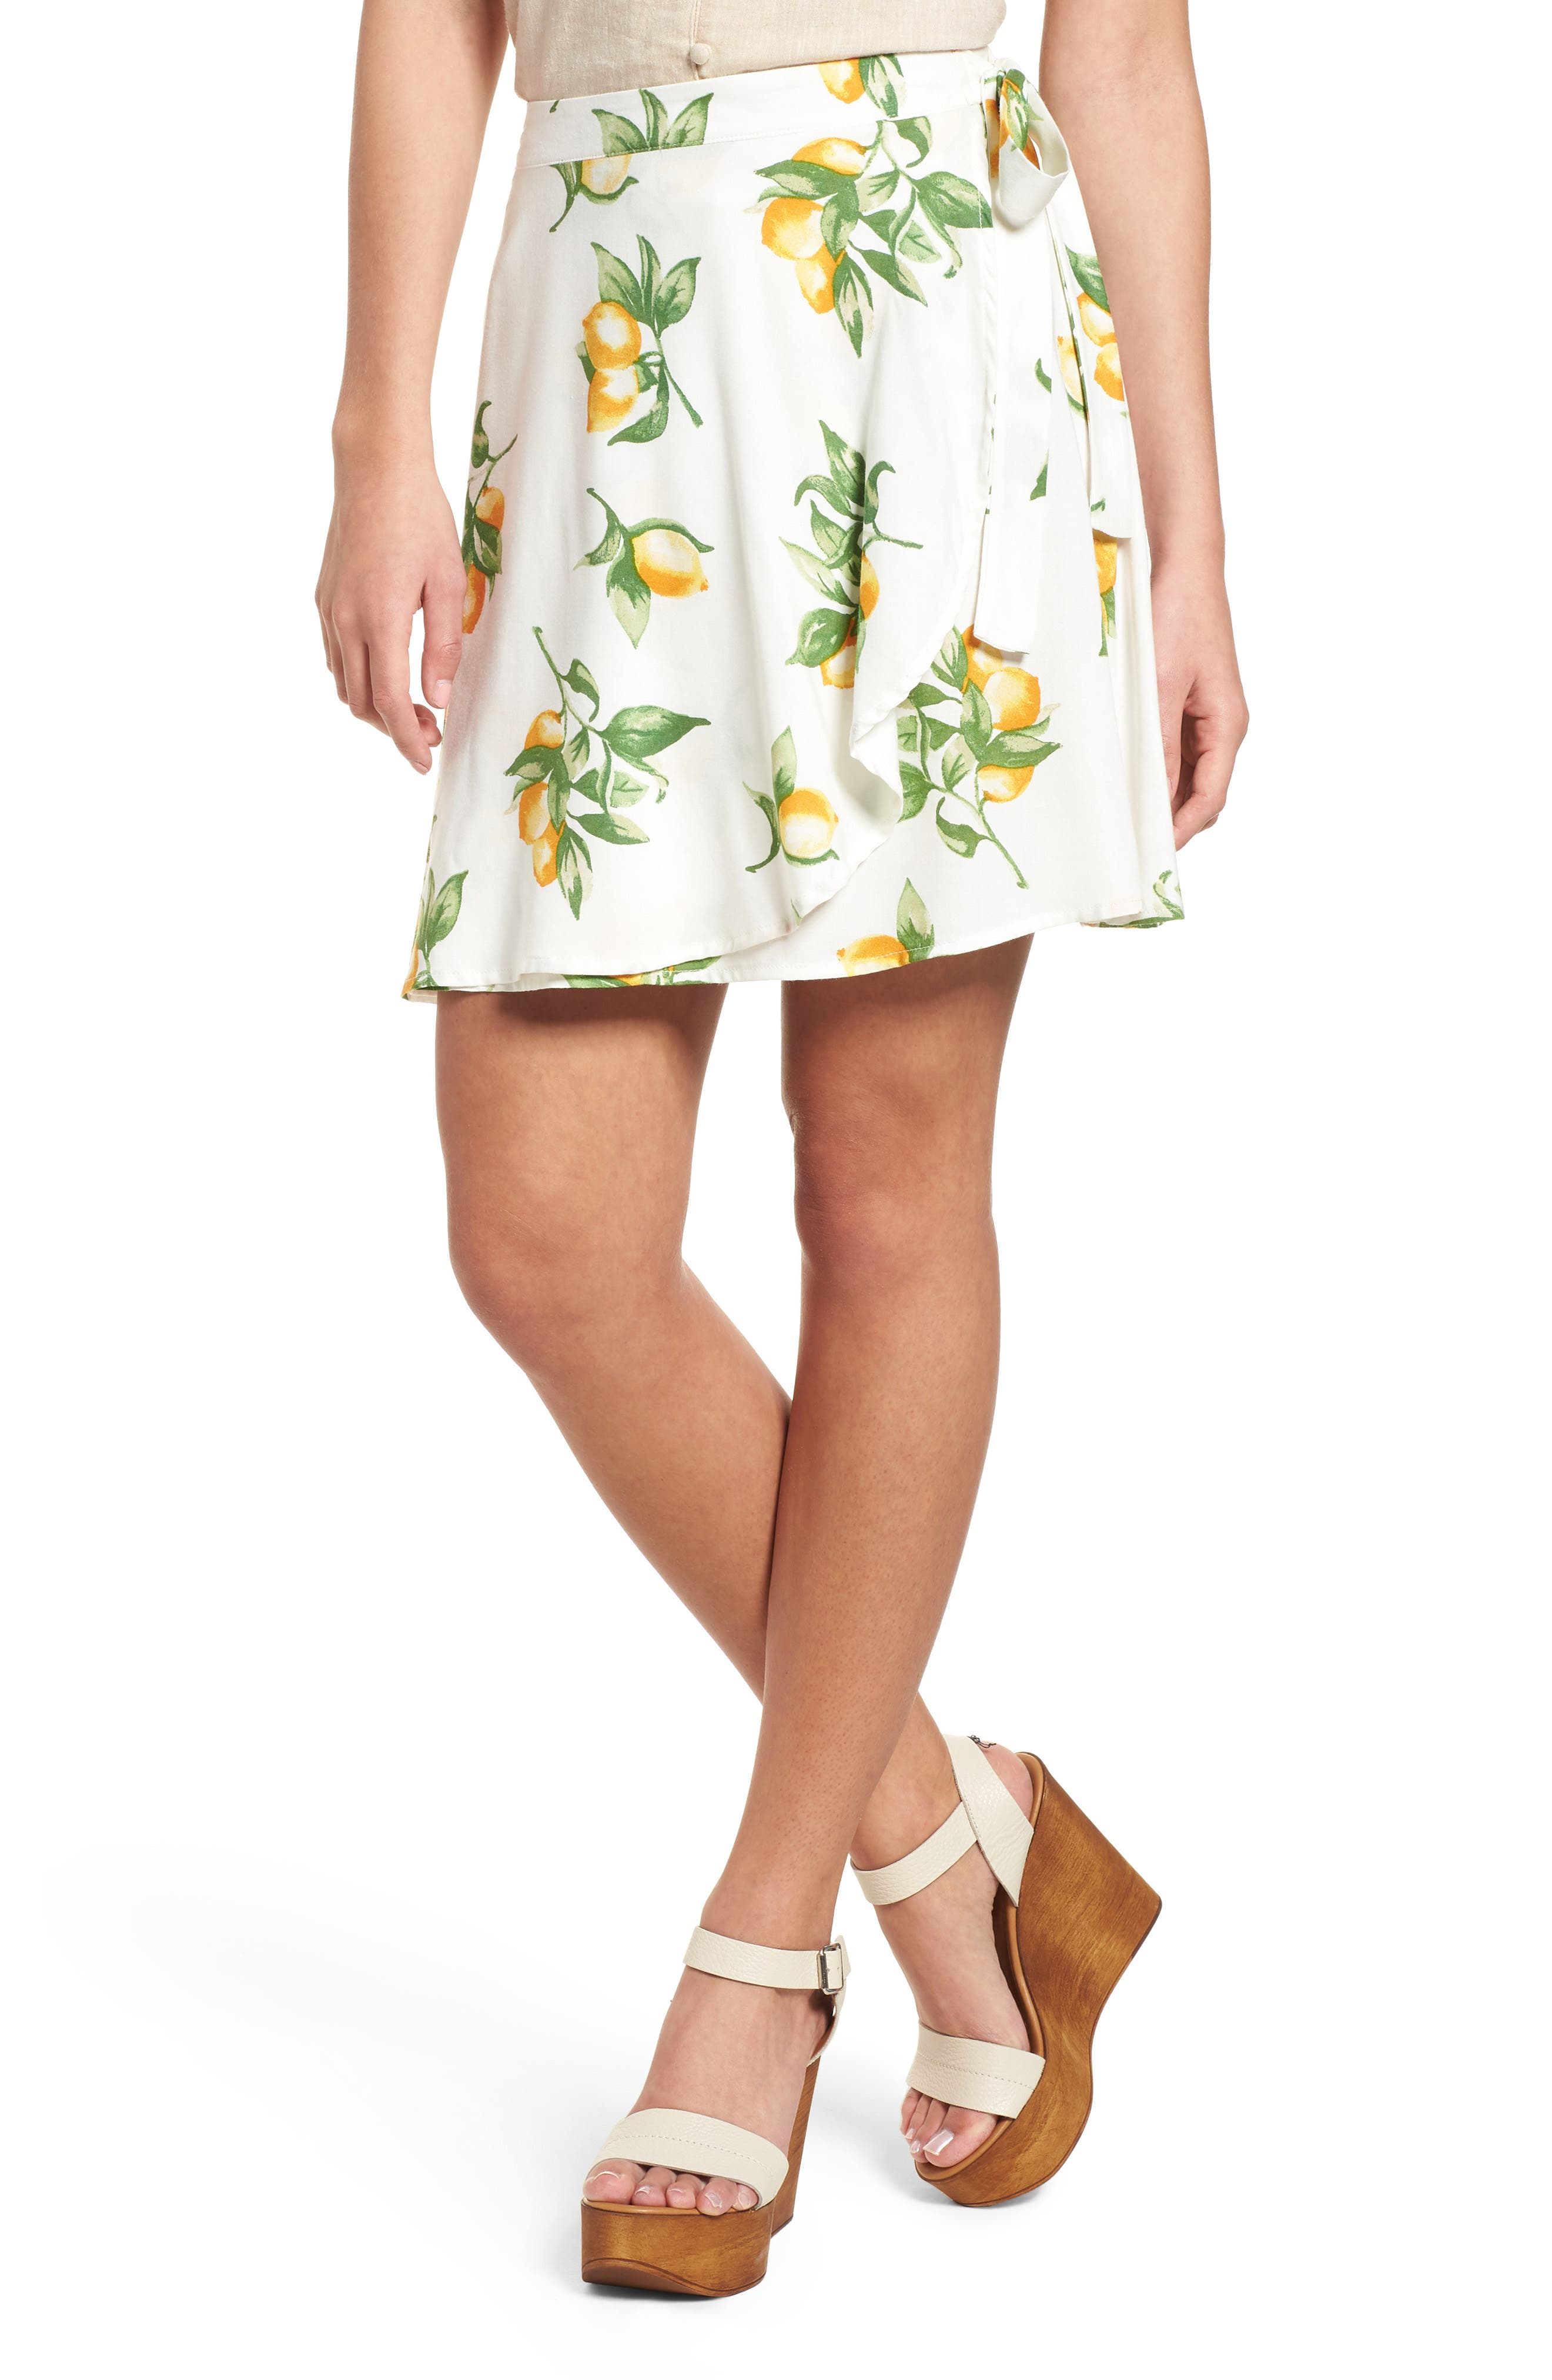 Alternate Image 1 Selected - Mimi Chica Fruit Print Side Tie Skirt